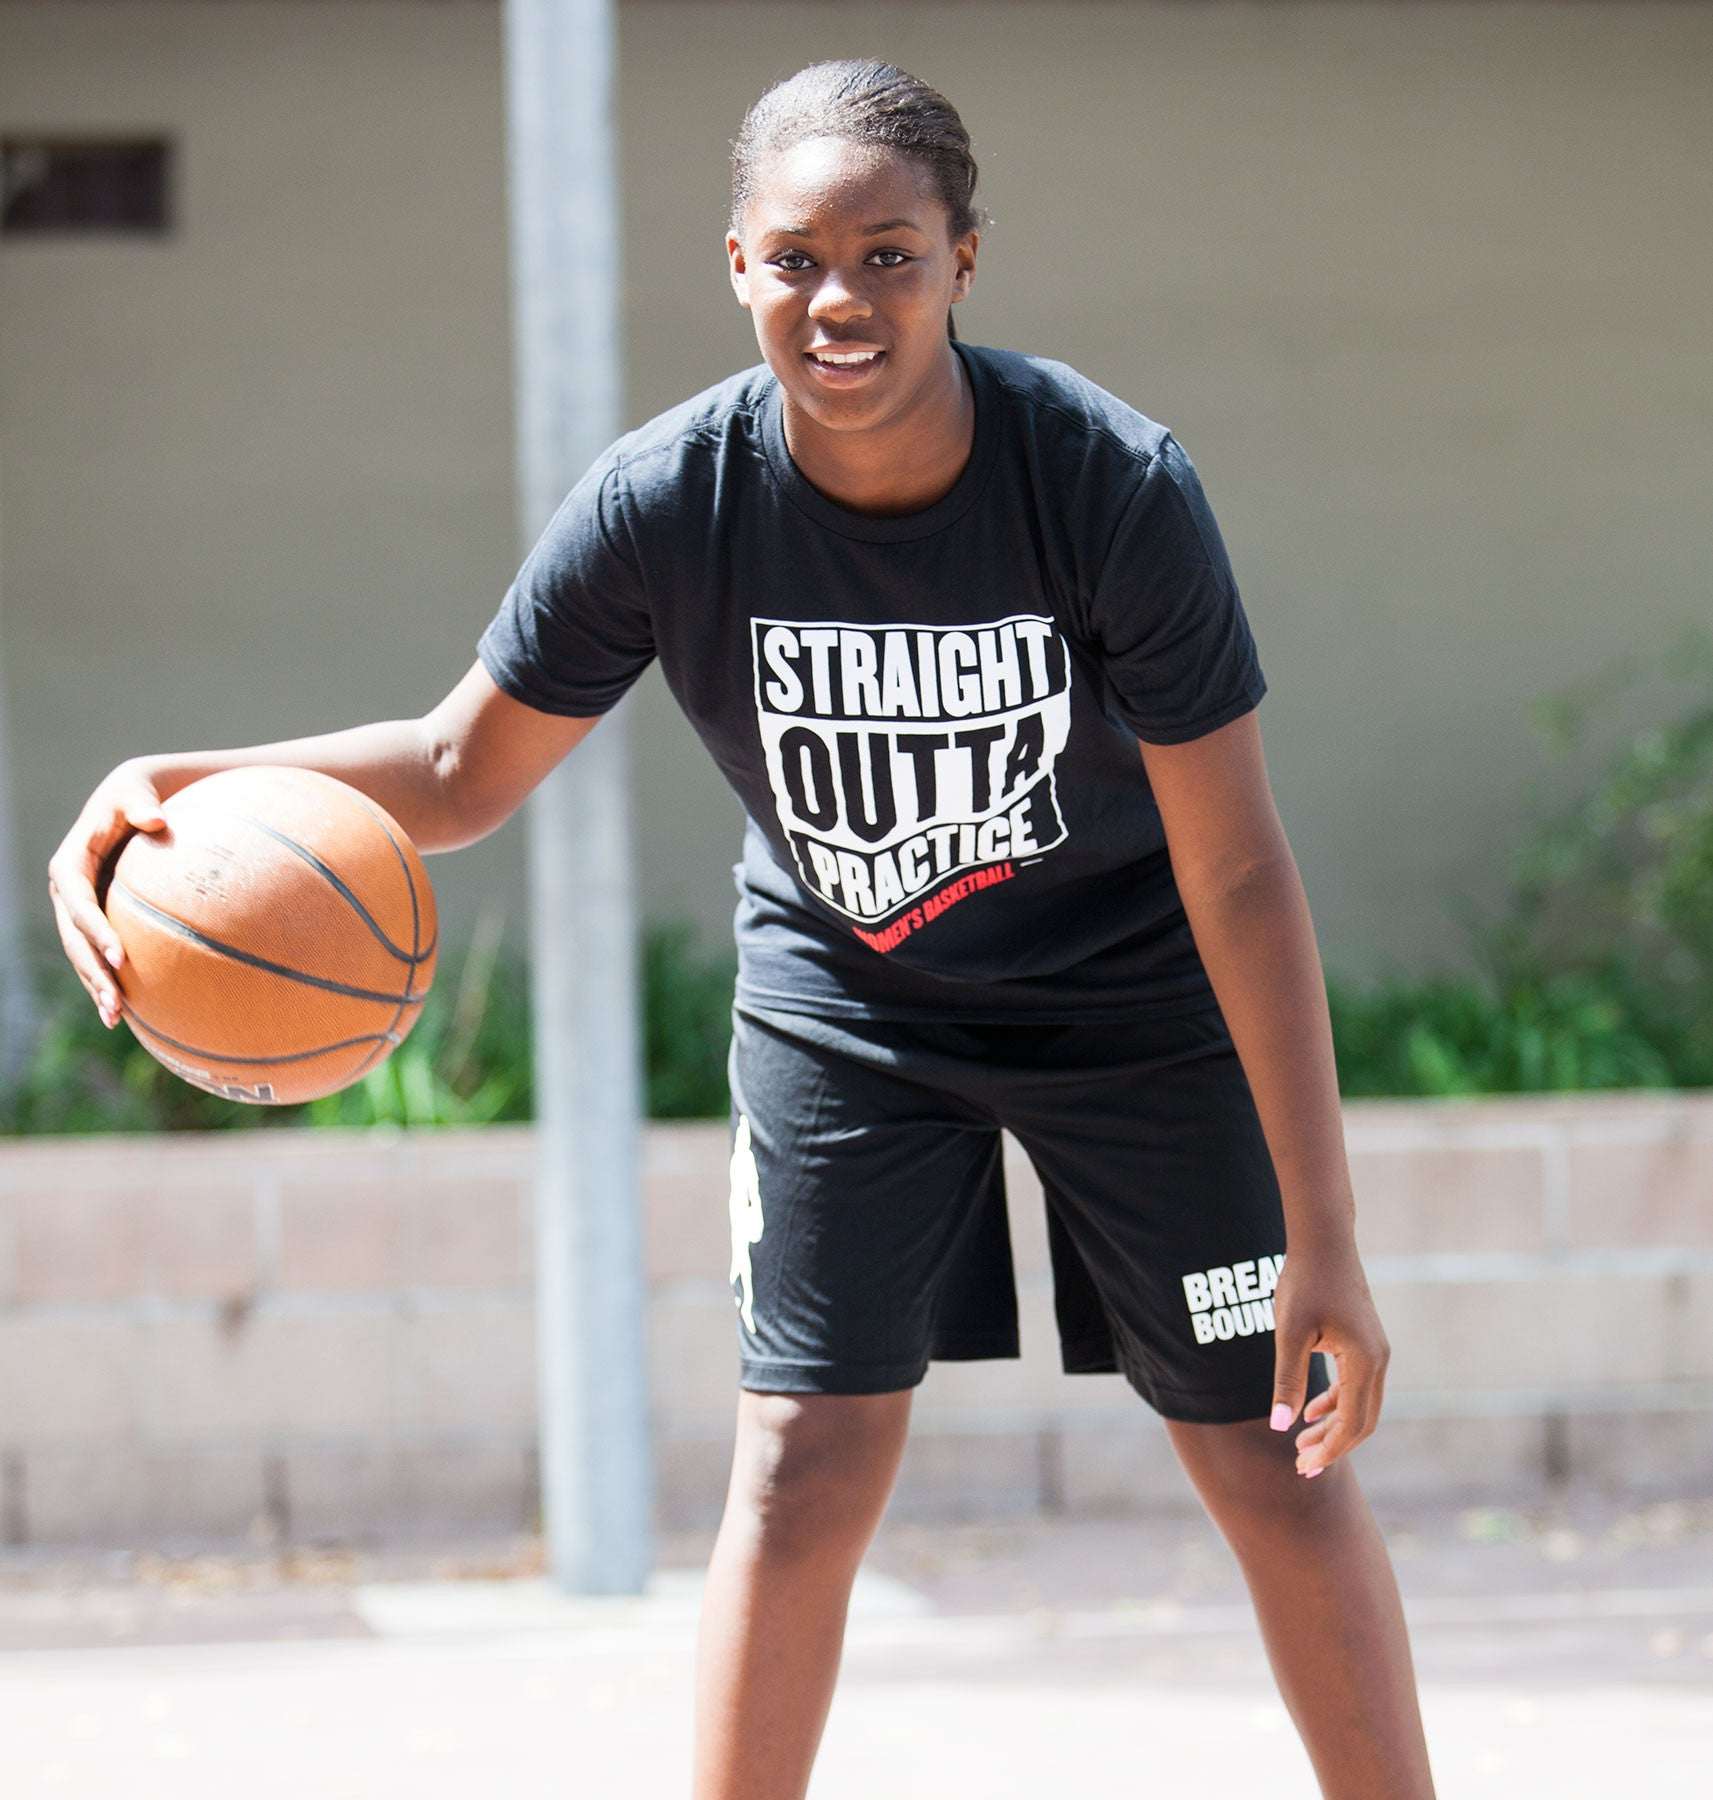 Straight Outta Practice Tee - Women's Basketball - Breaking Boundaries Apparel  - 2